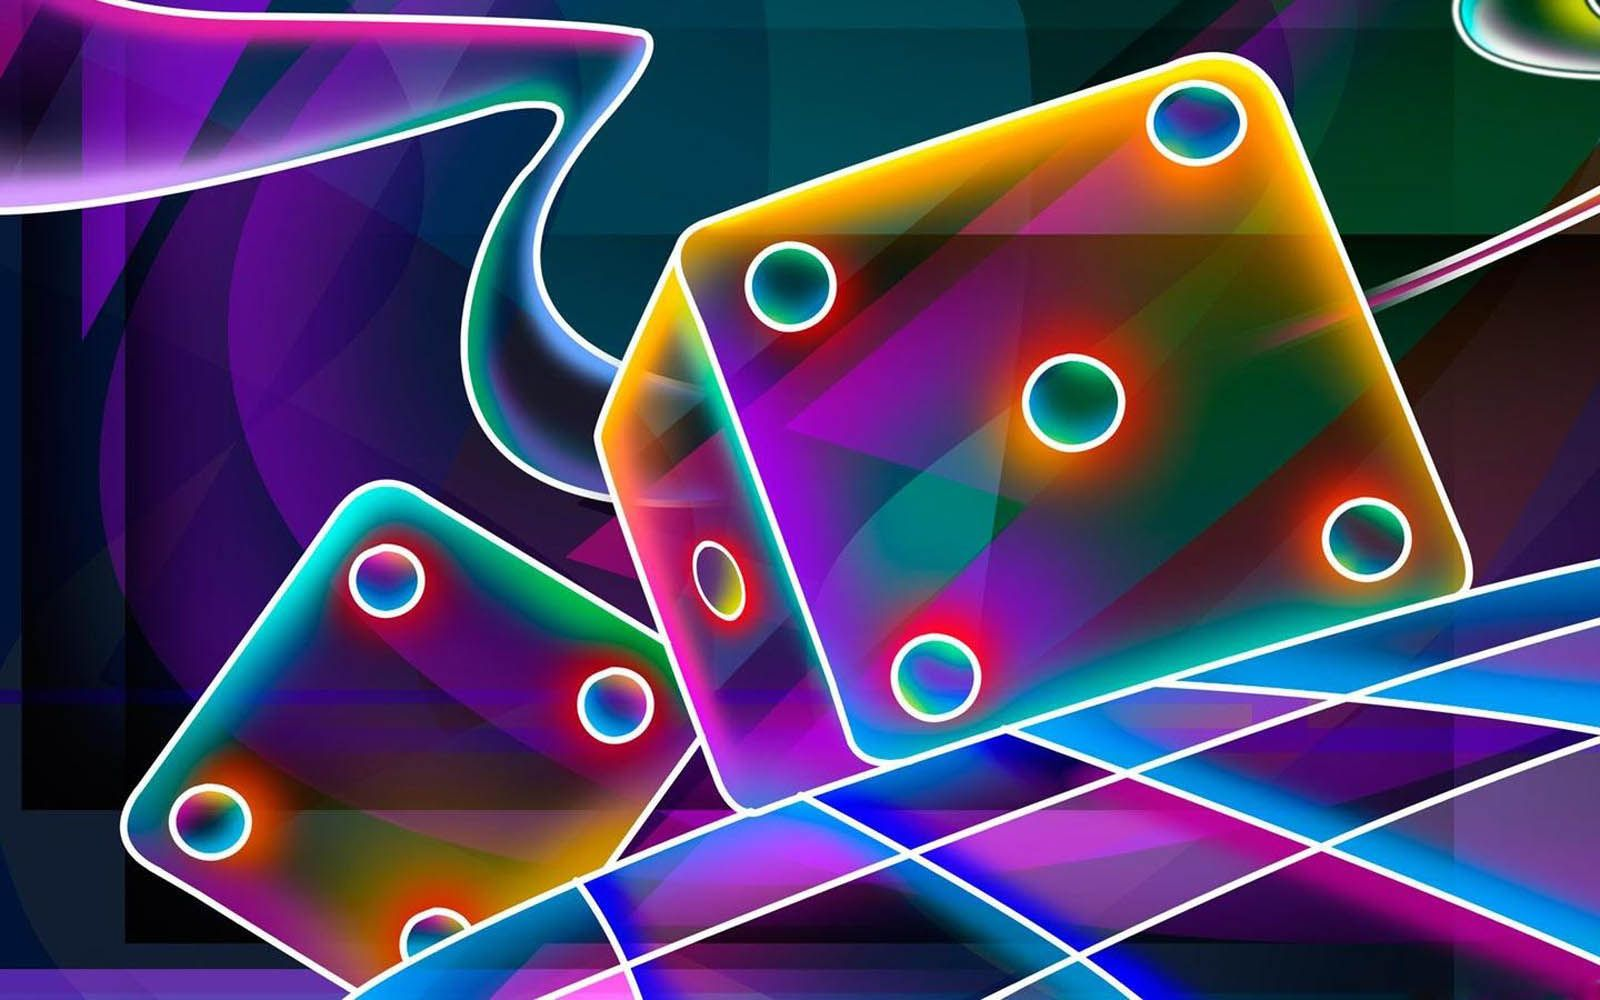 Purple Neon Dice Tag Art Wallpapers Backgrounds Photos Tendencies Tshirt Cross Hitam L Photosimages And Pictures For